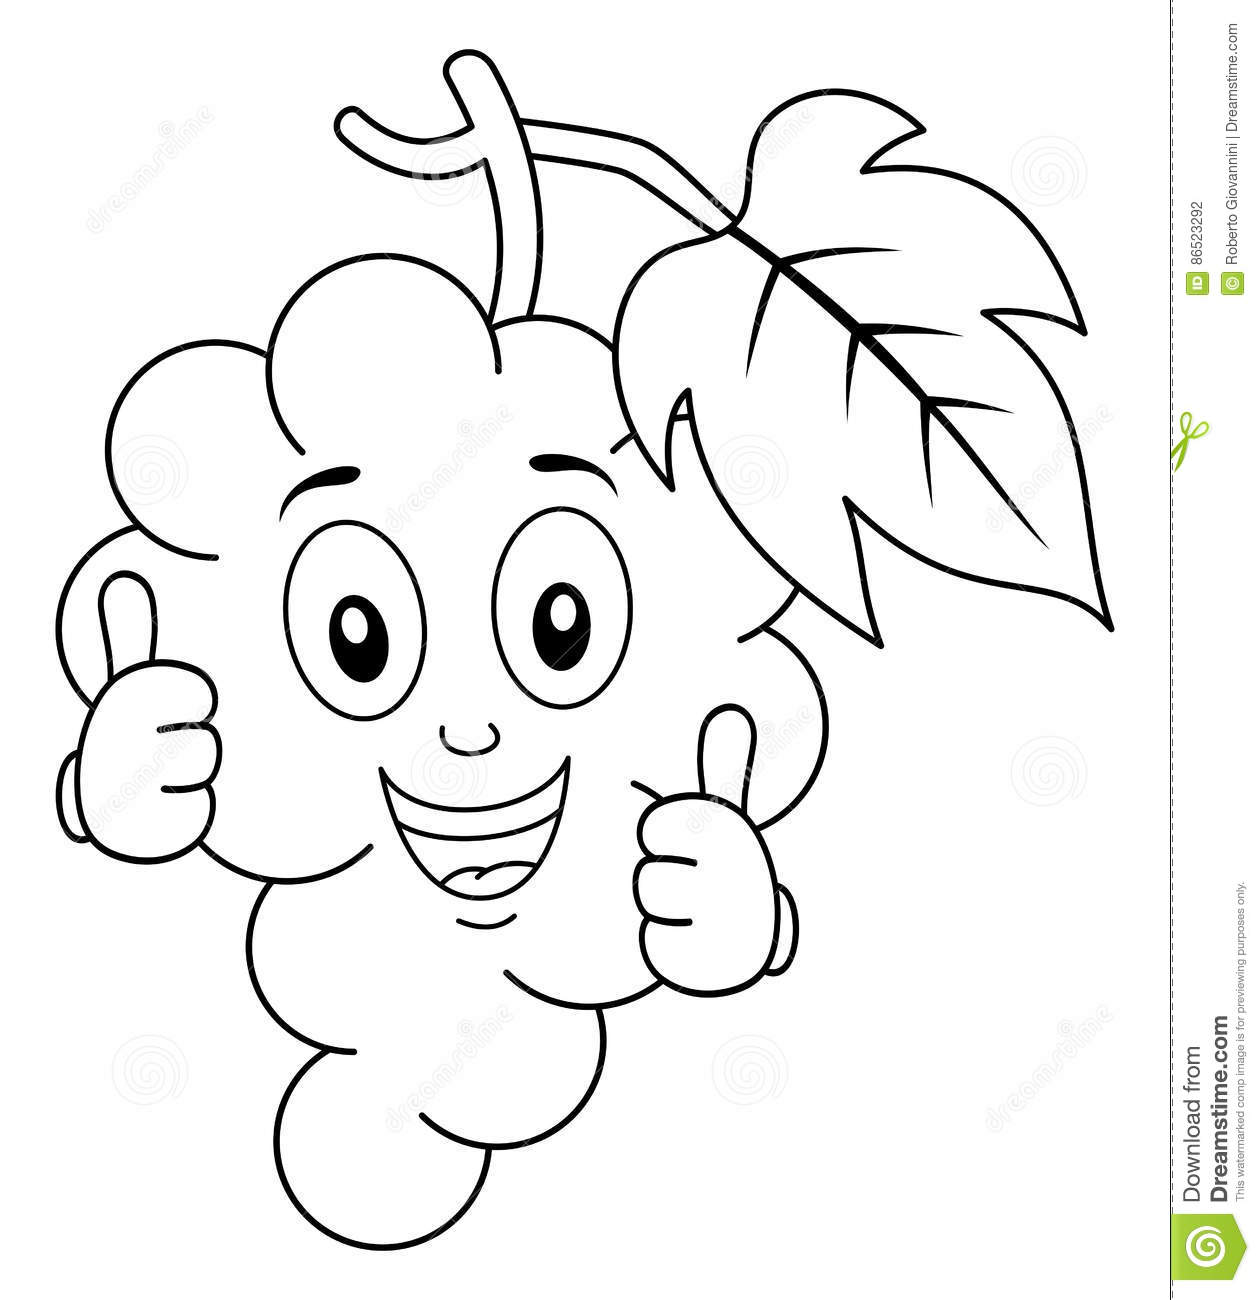 Coloring G S Character With Thumbs Up Stock Vector